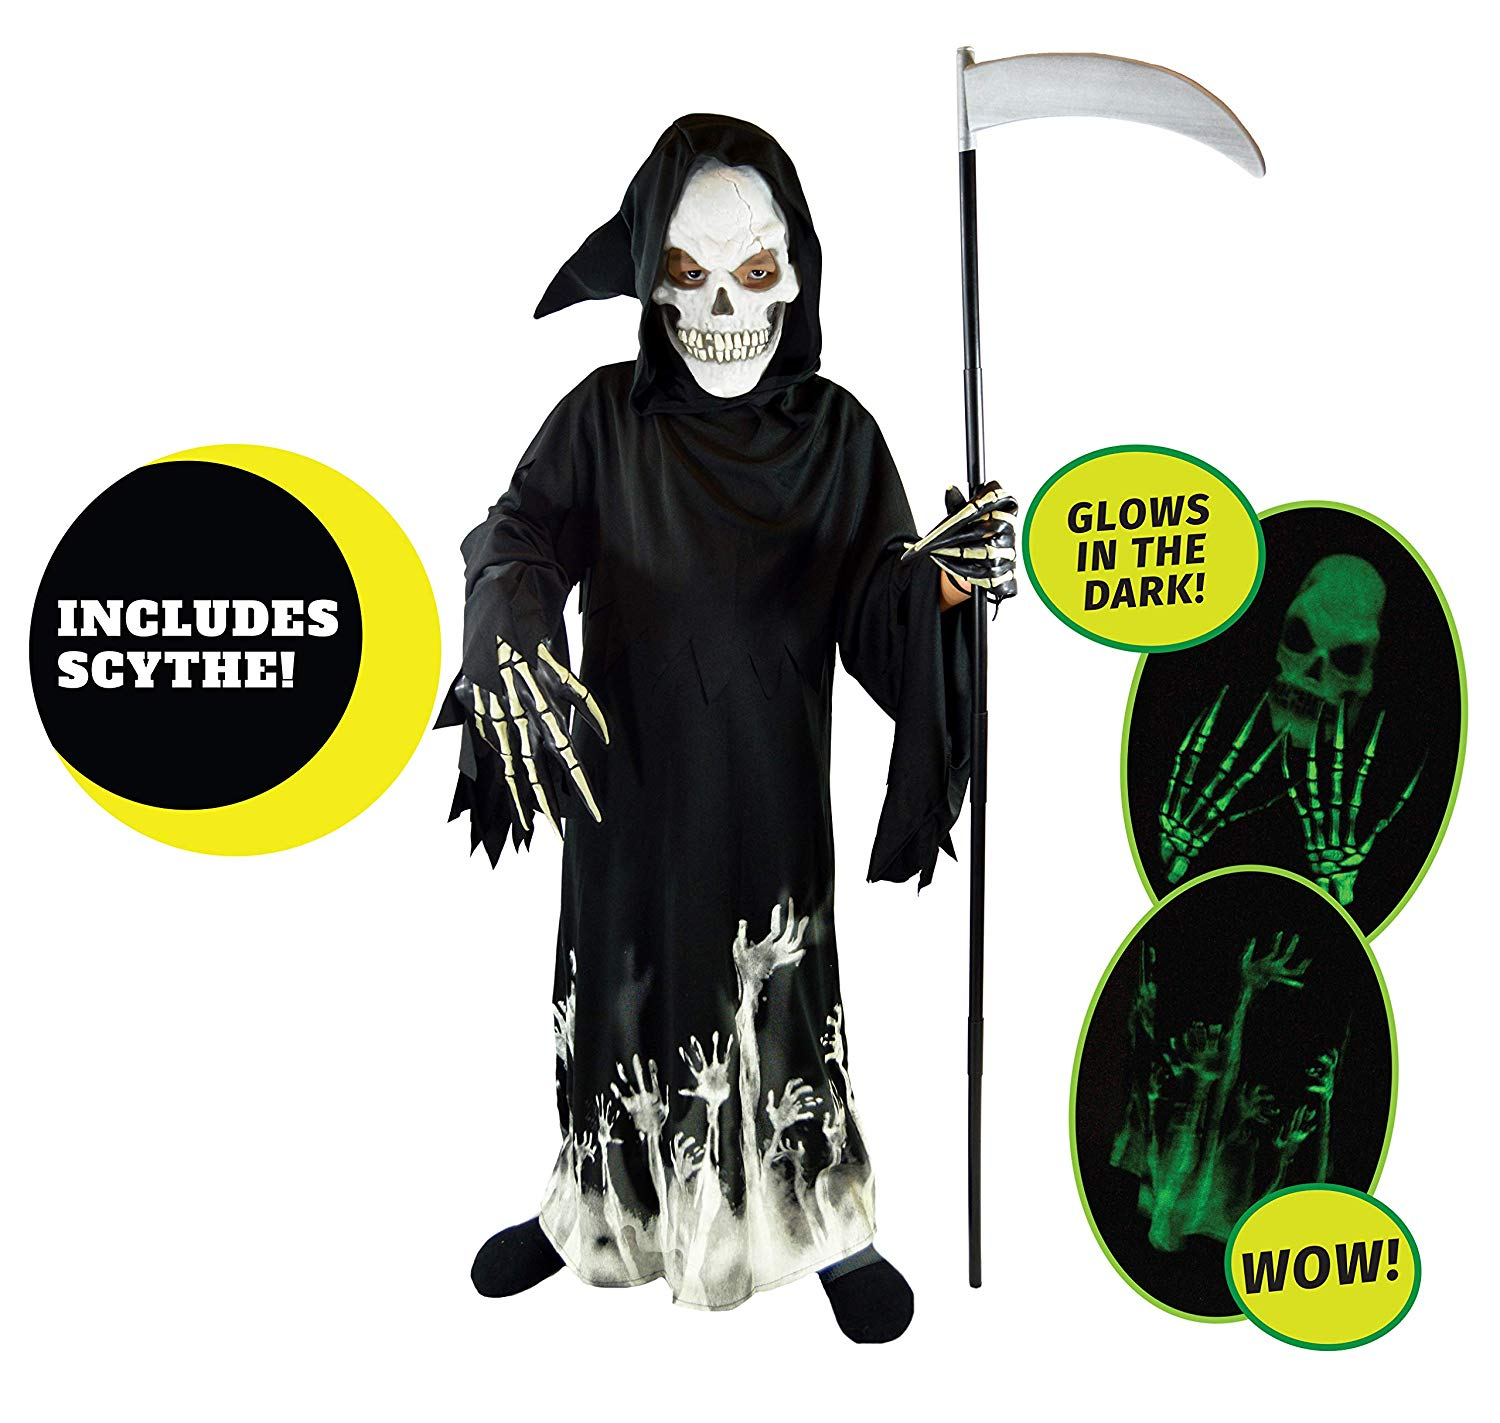 Spooktacular Creations Grim Reaper Glow in The Dark Deluxe Phantom Costume for Kids